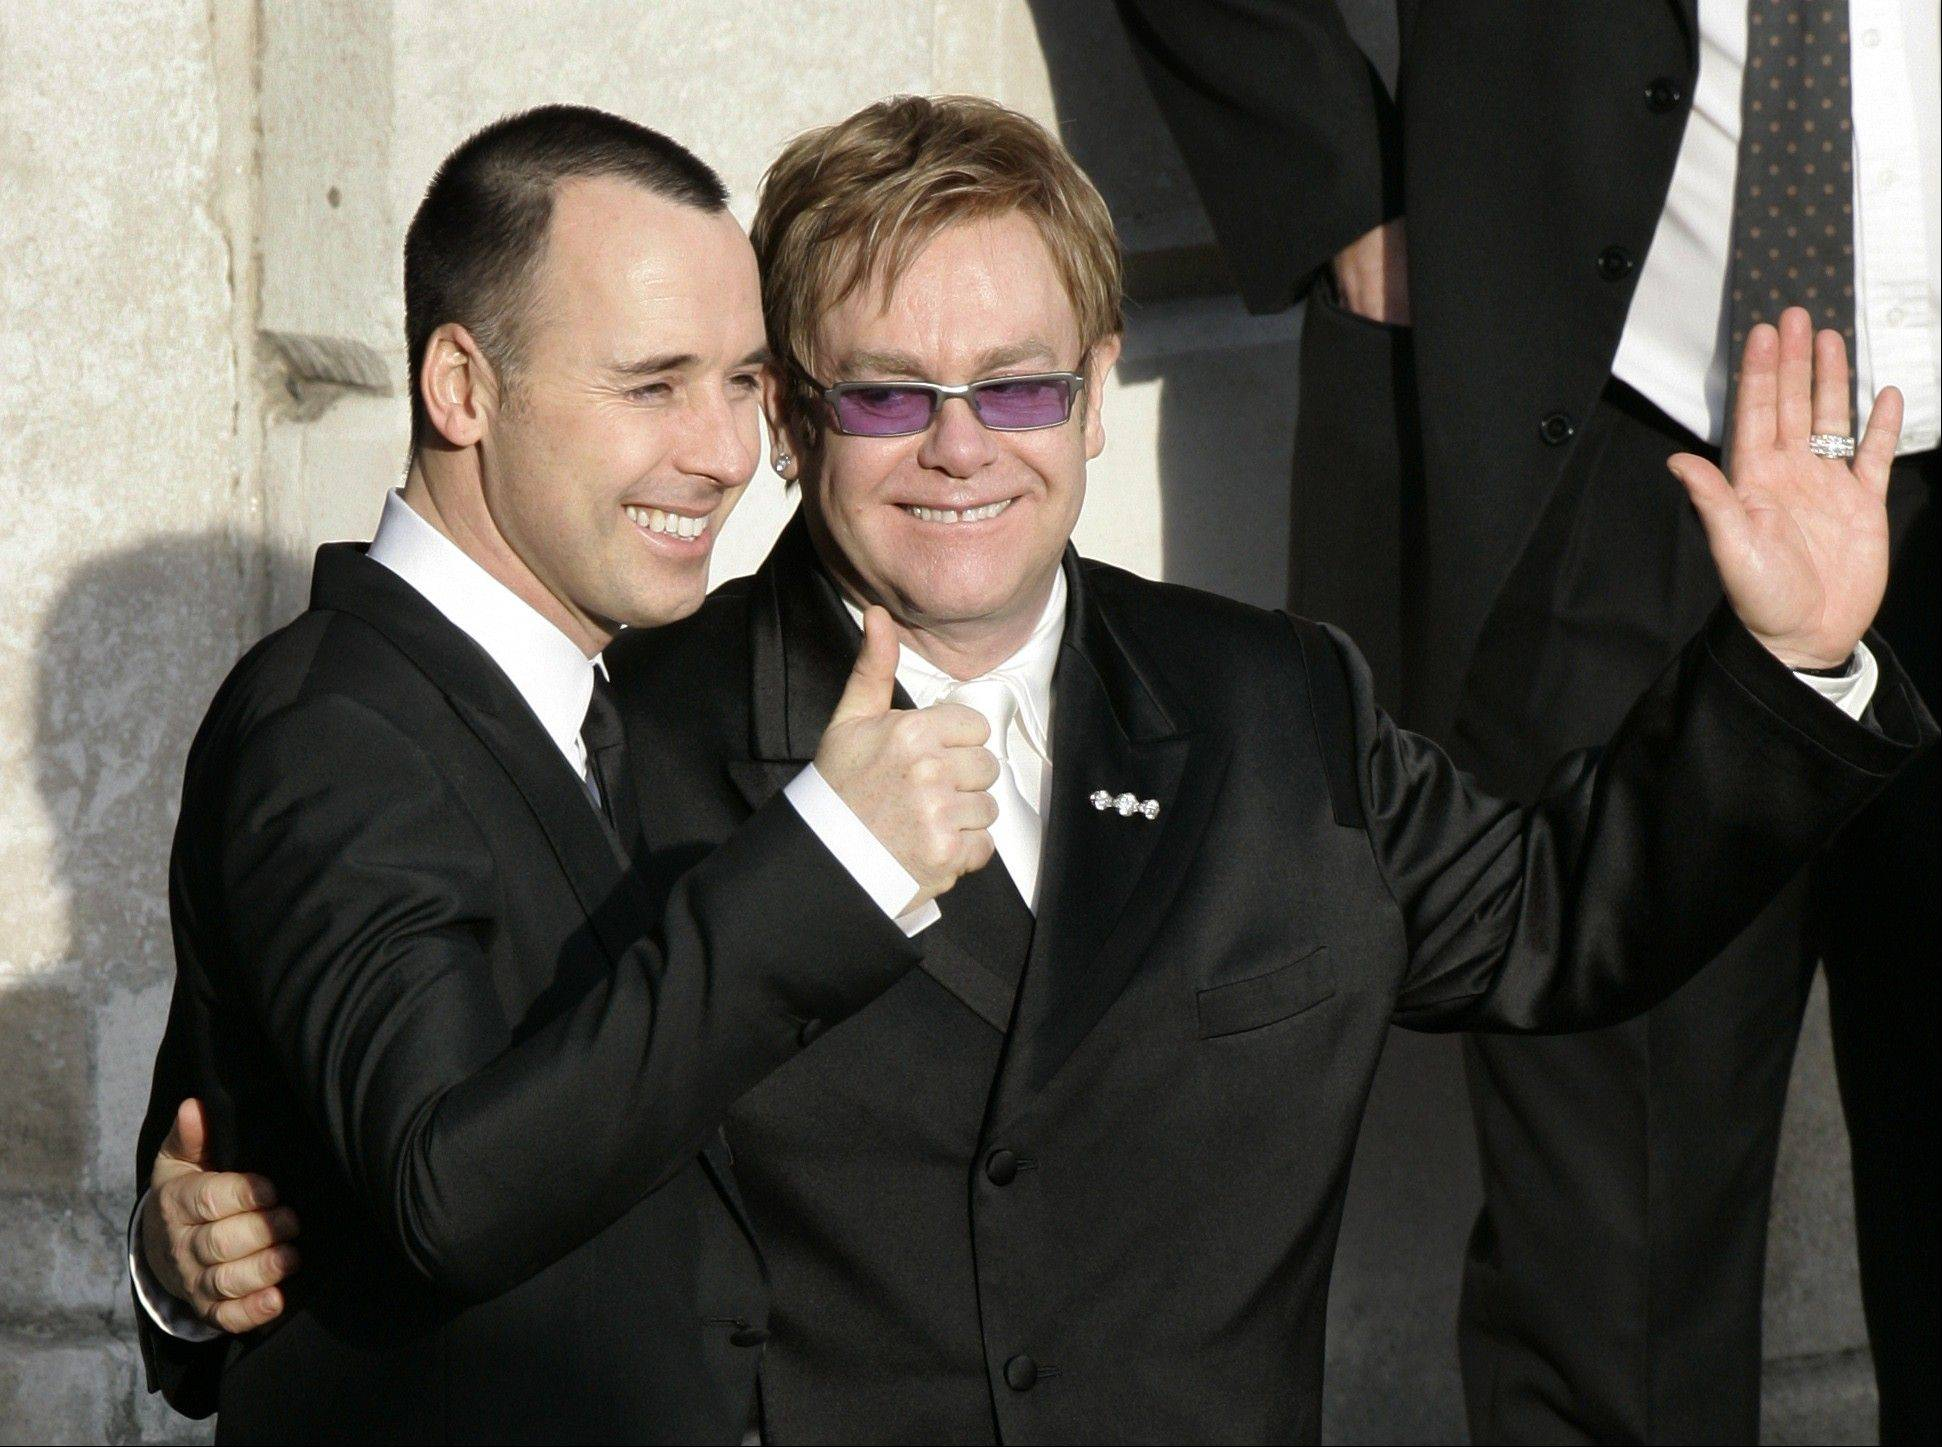 Pop star Elton John, right, and his longtime partner David Furnish were the most prominent of hundreds of same-sex couples planning to form civil partnerships in England and Wales on Wednesday, the first day that such ceremonies become possible.